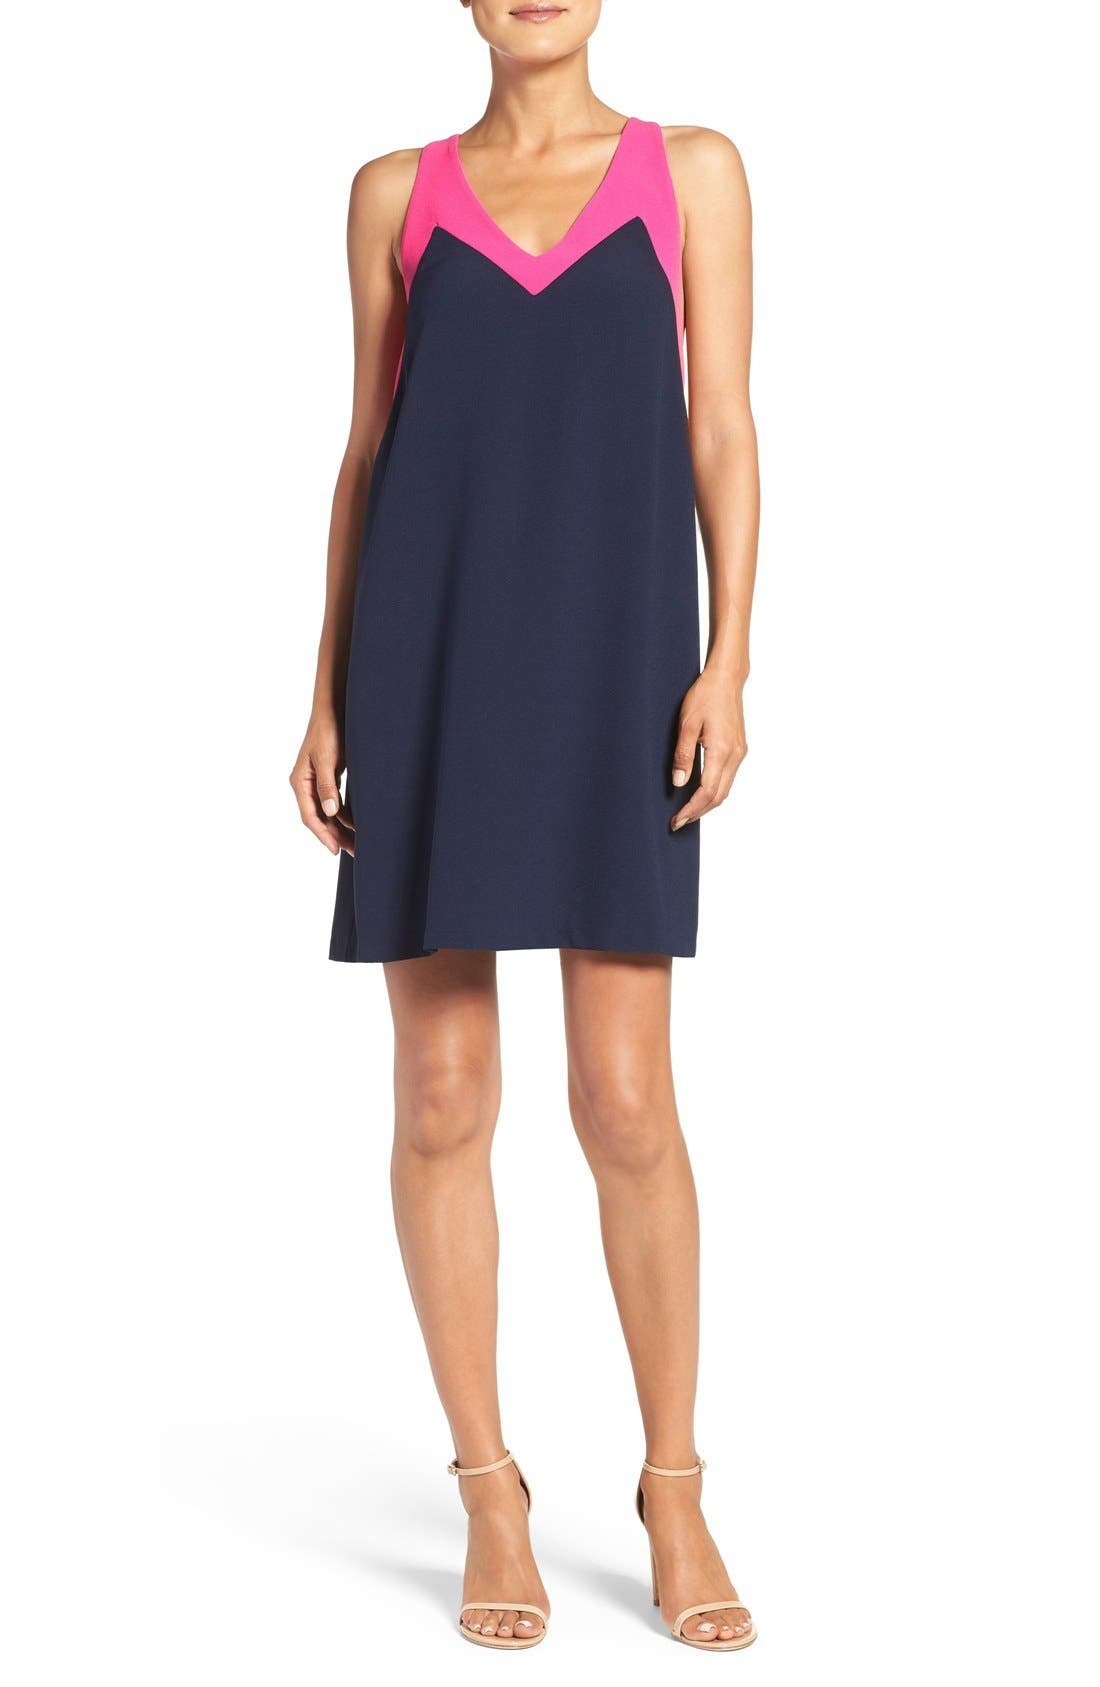 Felicity & Coco Katy Colorblock Shift Dress (Regular & Petite) (Nordstrom Exclusive)